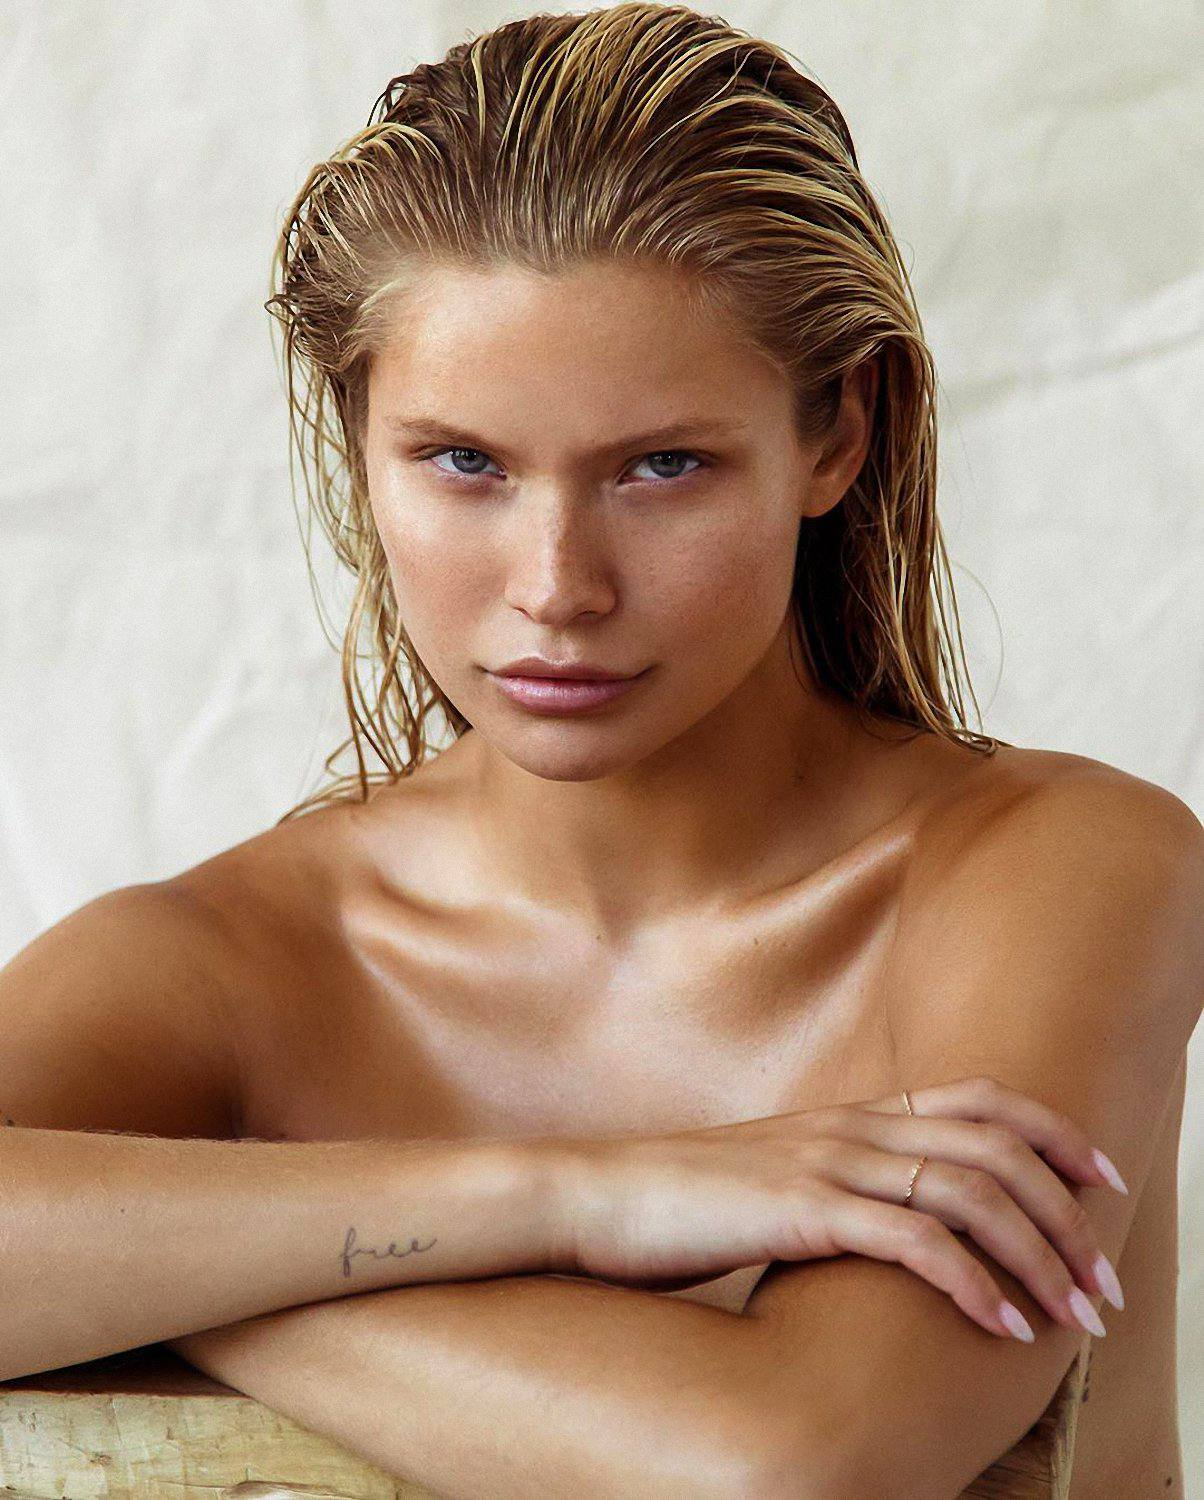 Josie Canseco - Beautiful Body in Topless Photoshoot by France & Jesse